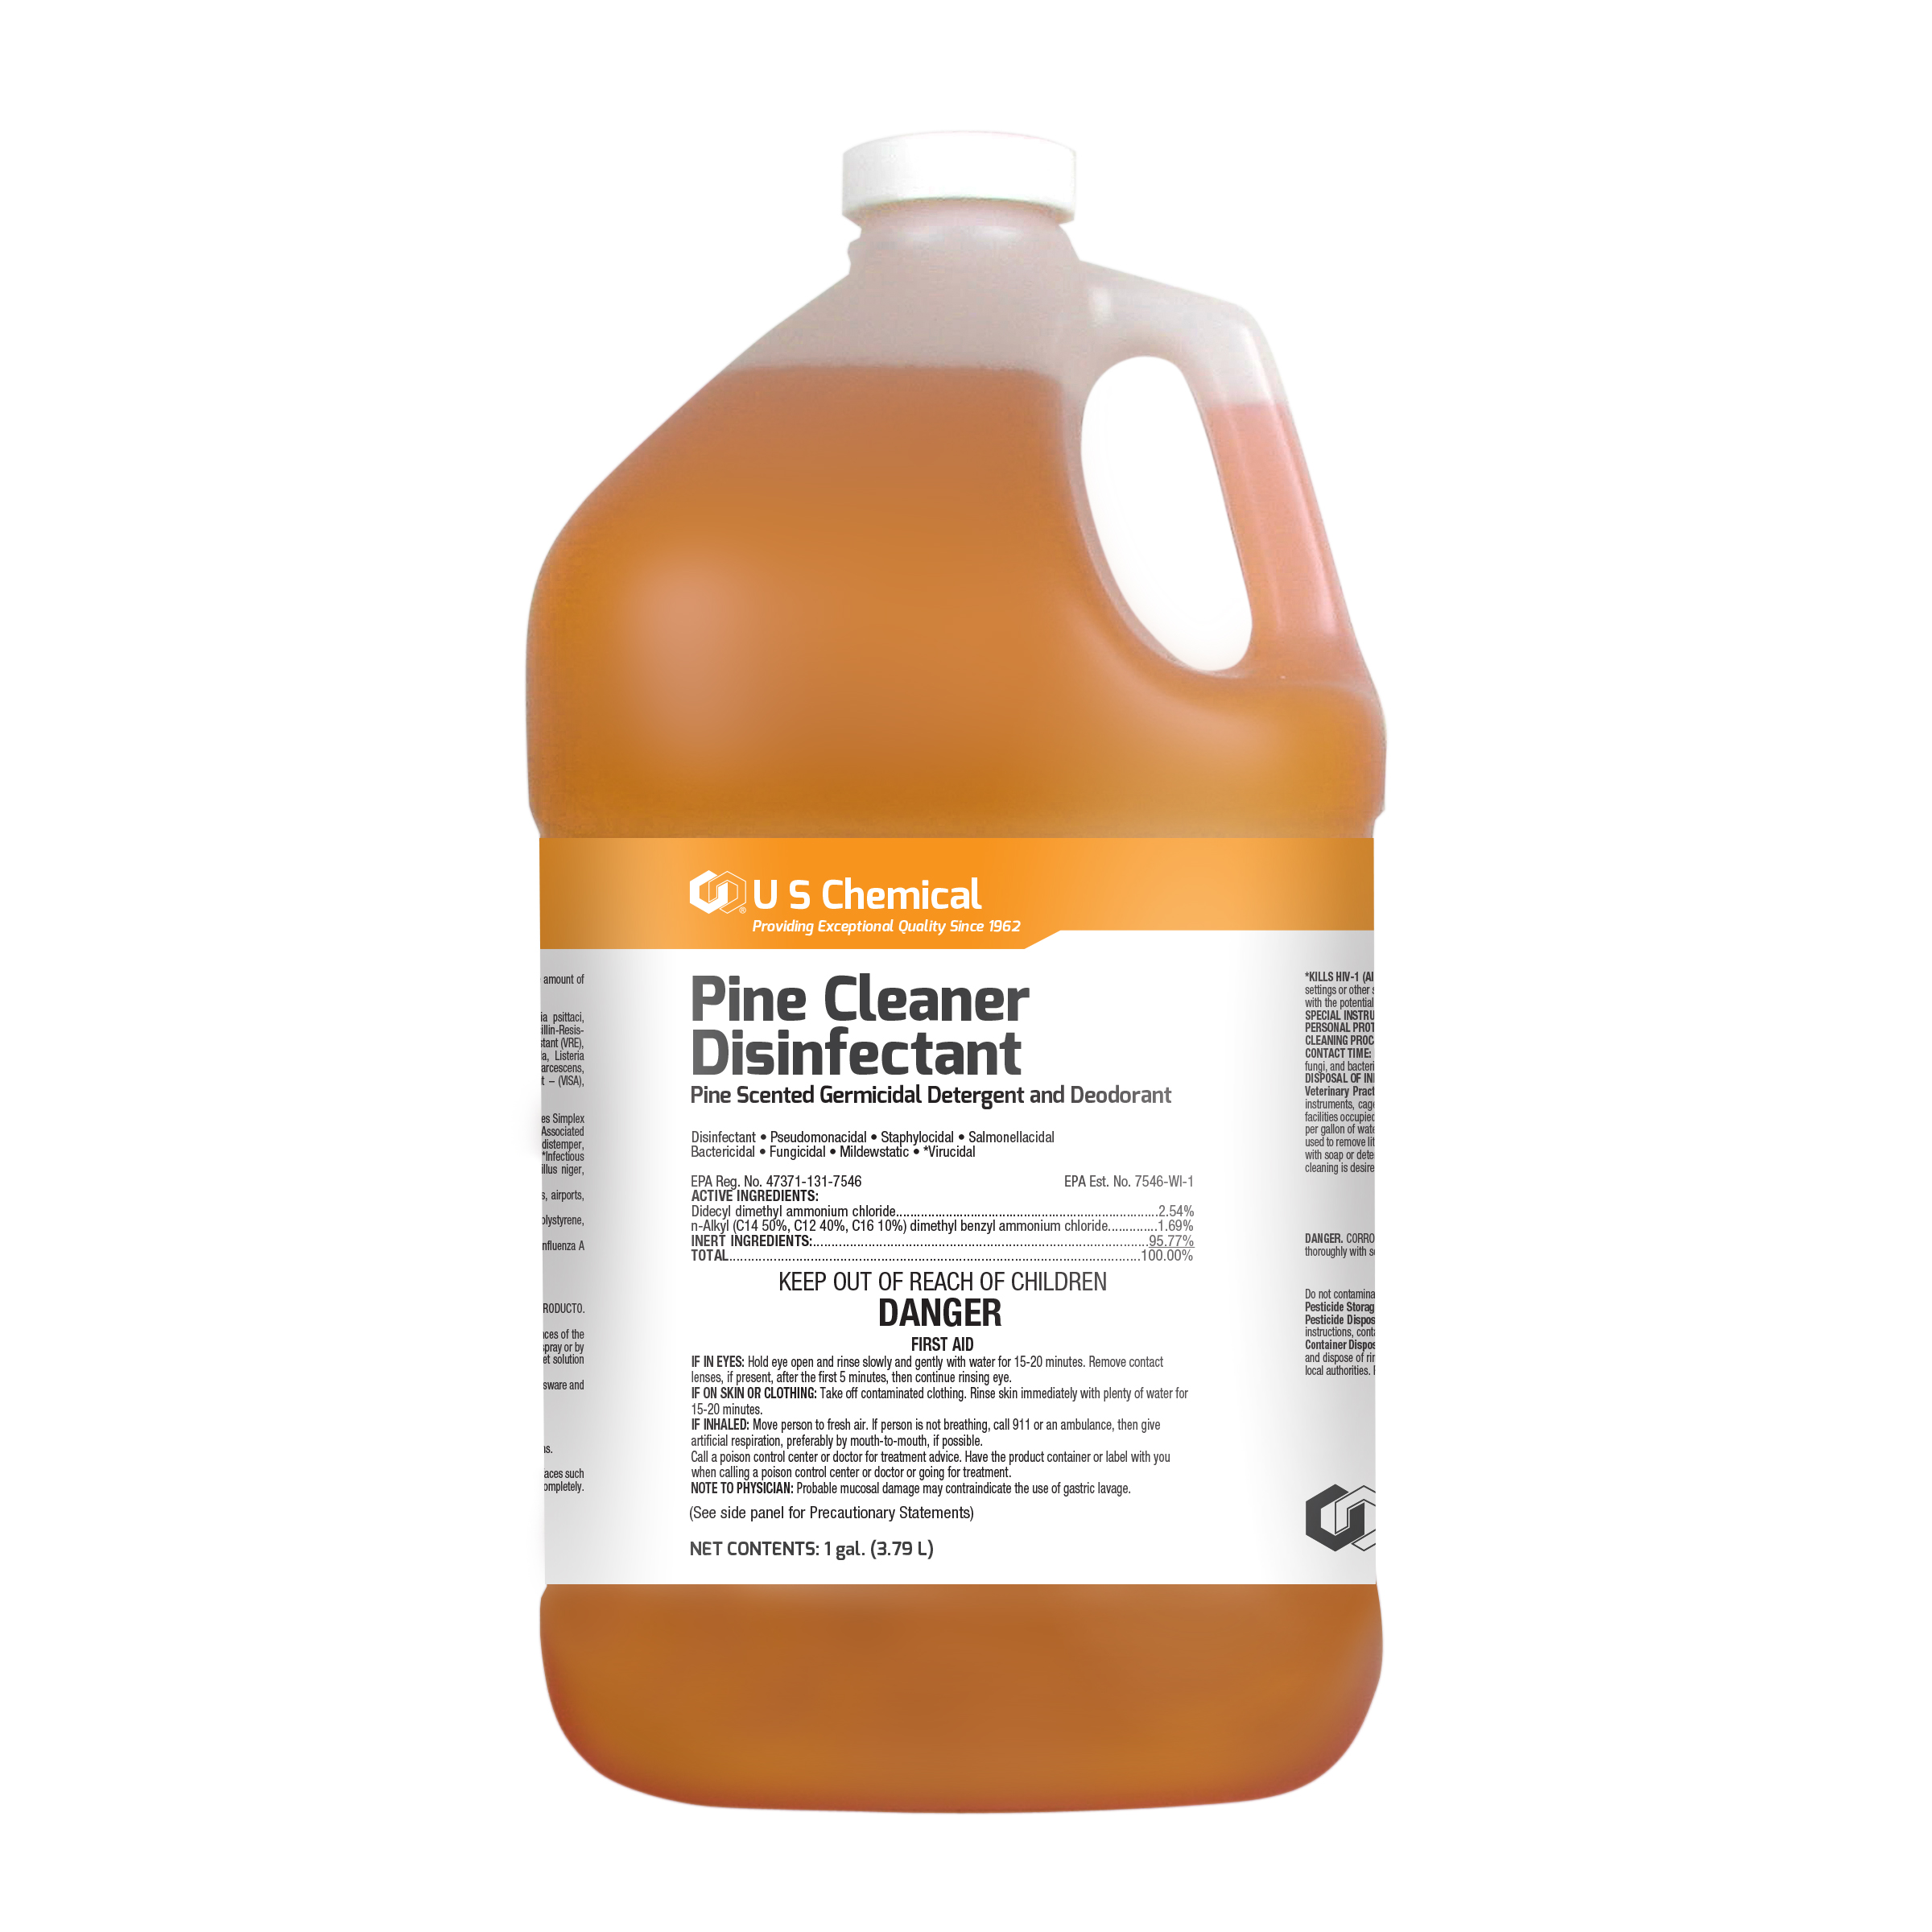 057659_PINE_CLEANER_DISINFECTANT_1GA